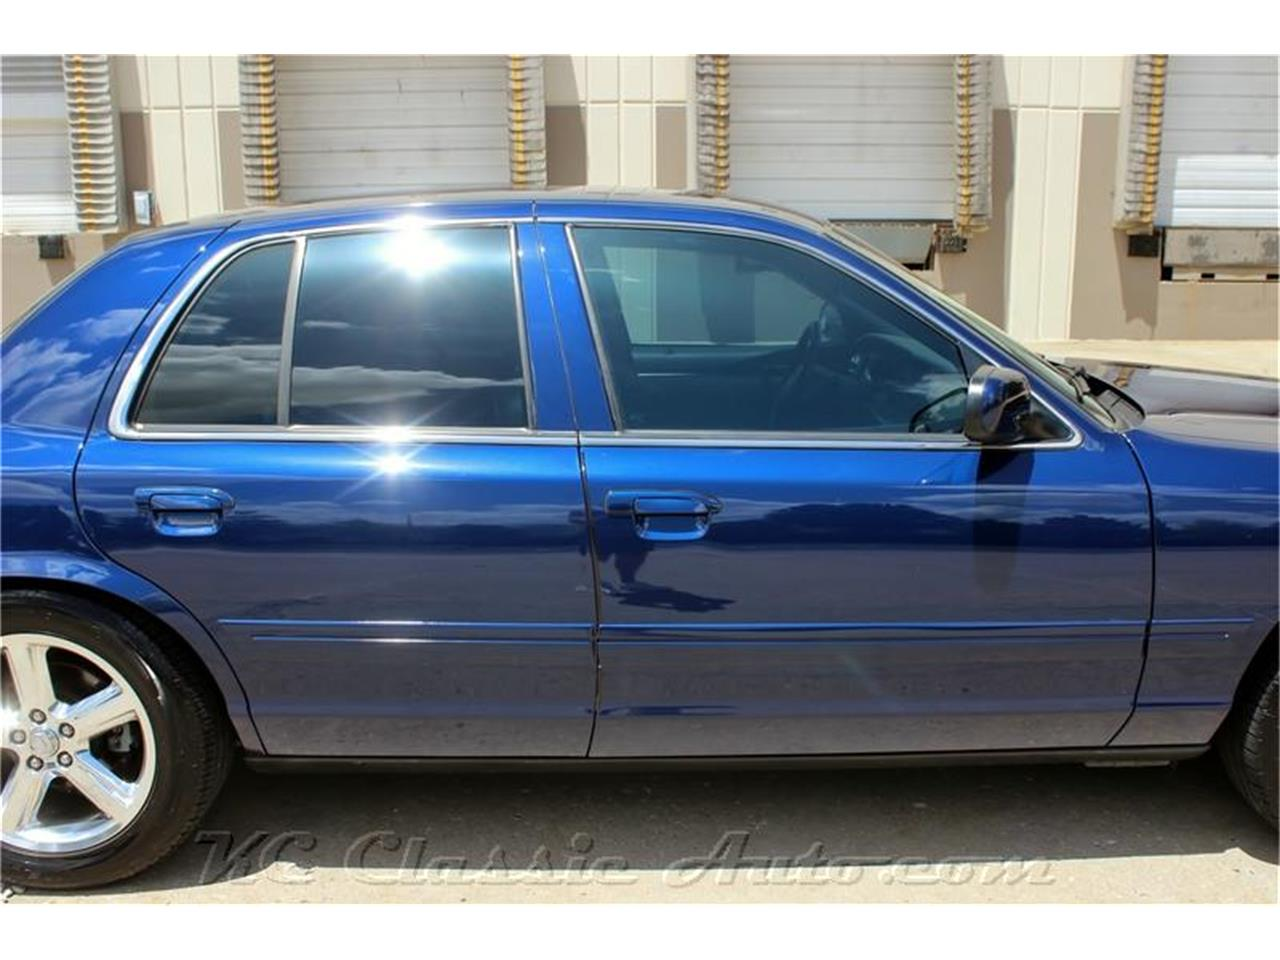 2003 Mercury Marauder for sale in Lenexa, KS – photo 36